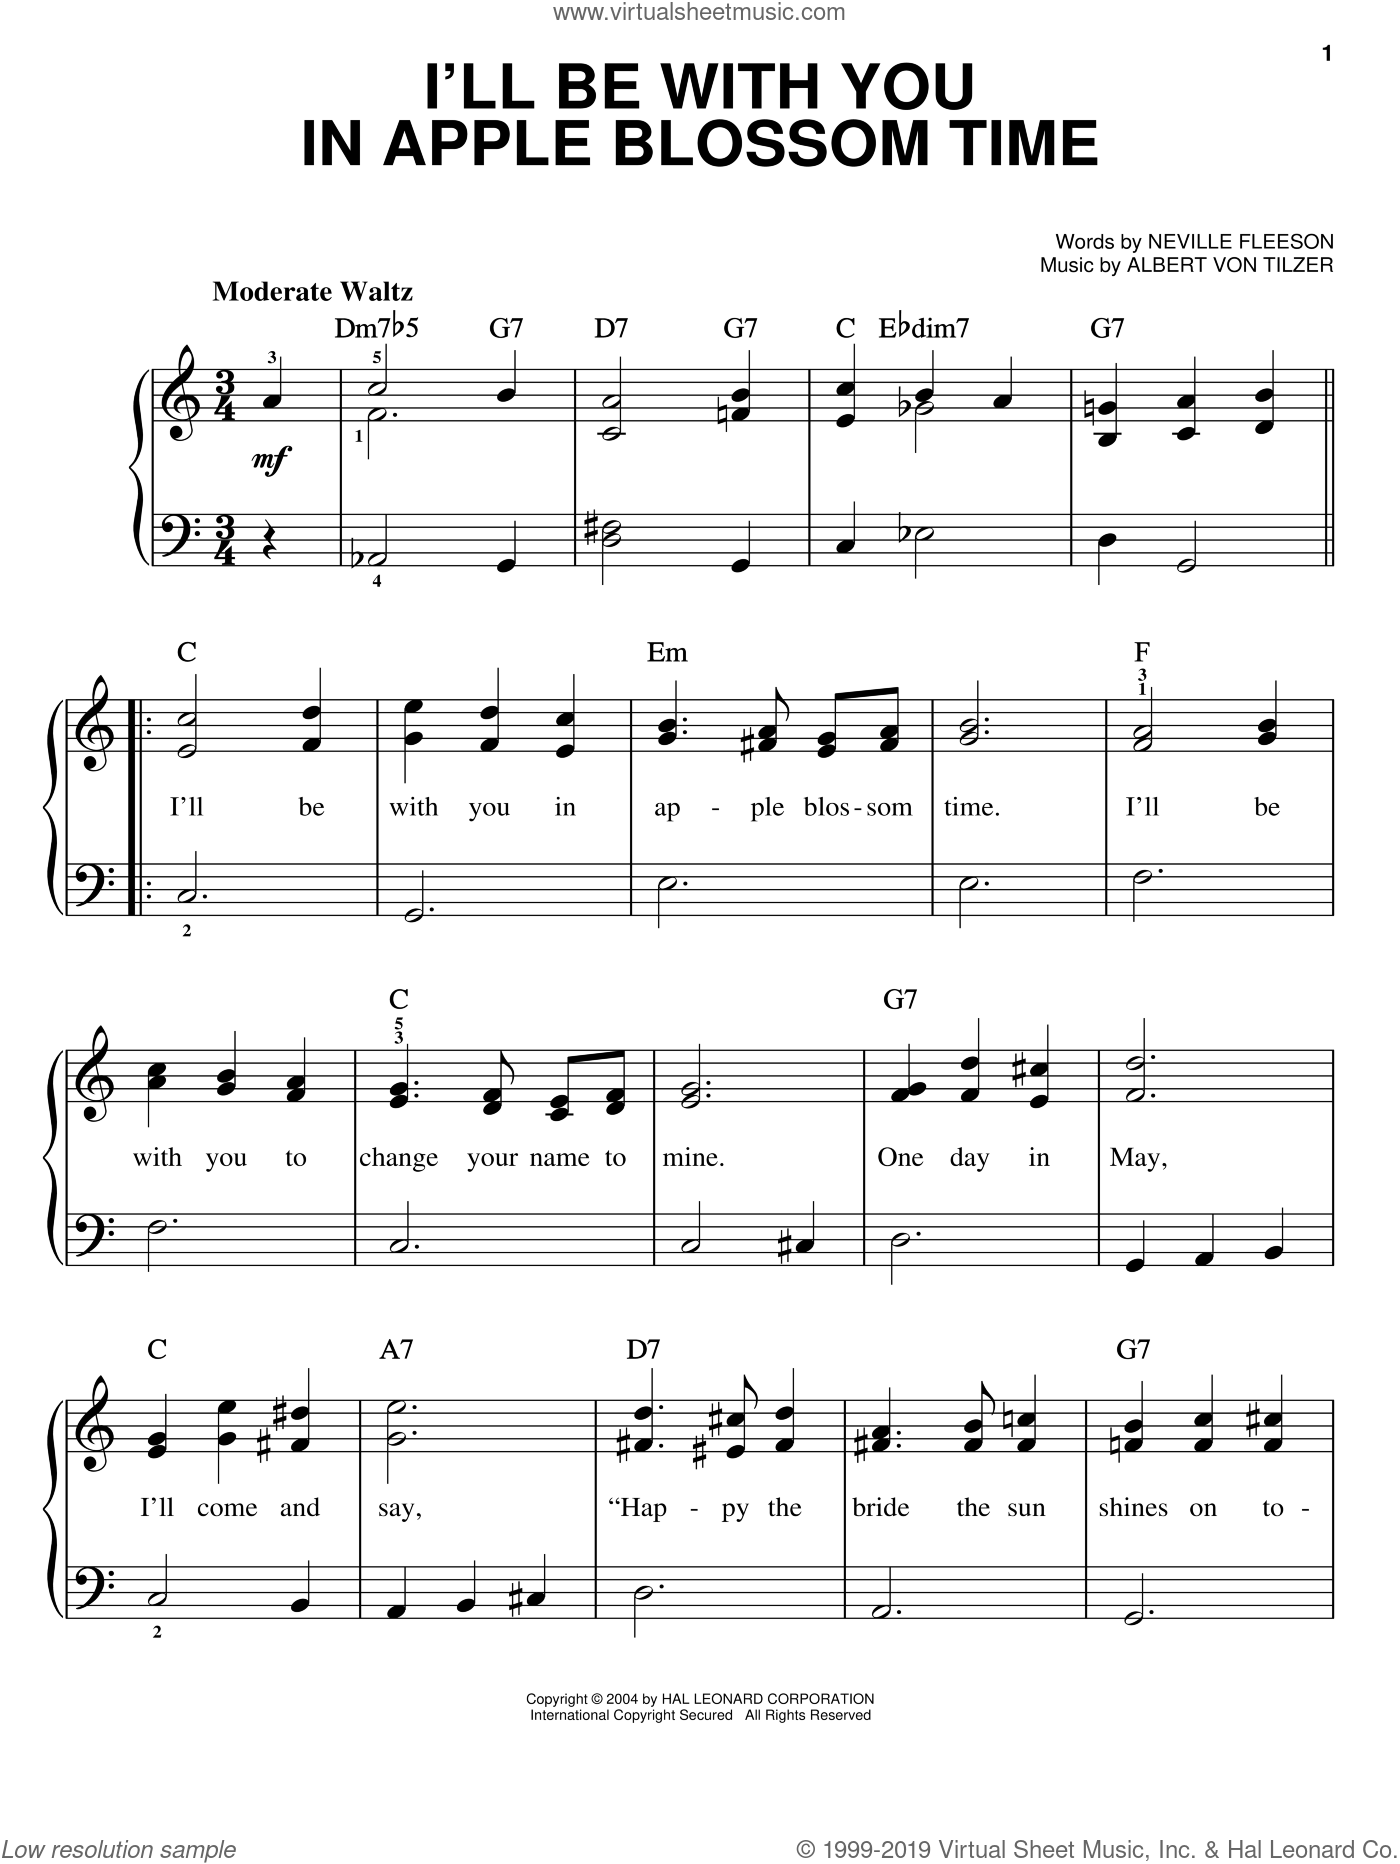 I'll Be With You In Apple Blossom Time sheet music for piano solo by Albert von Tilzer and Neville Fleeson